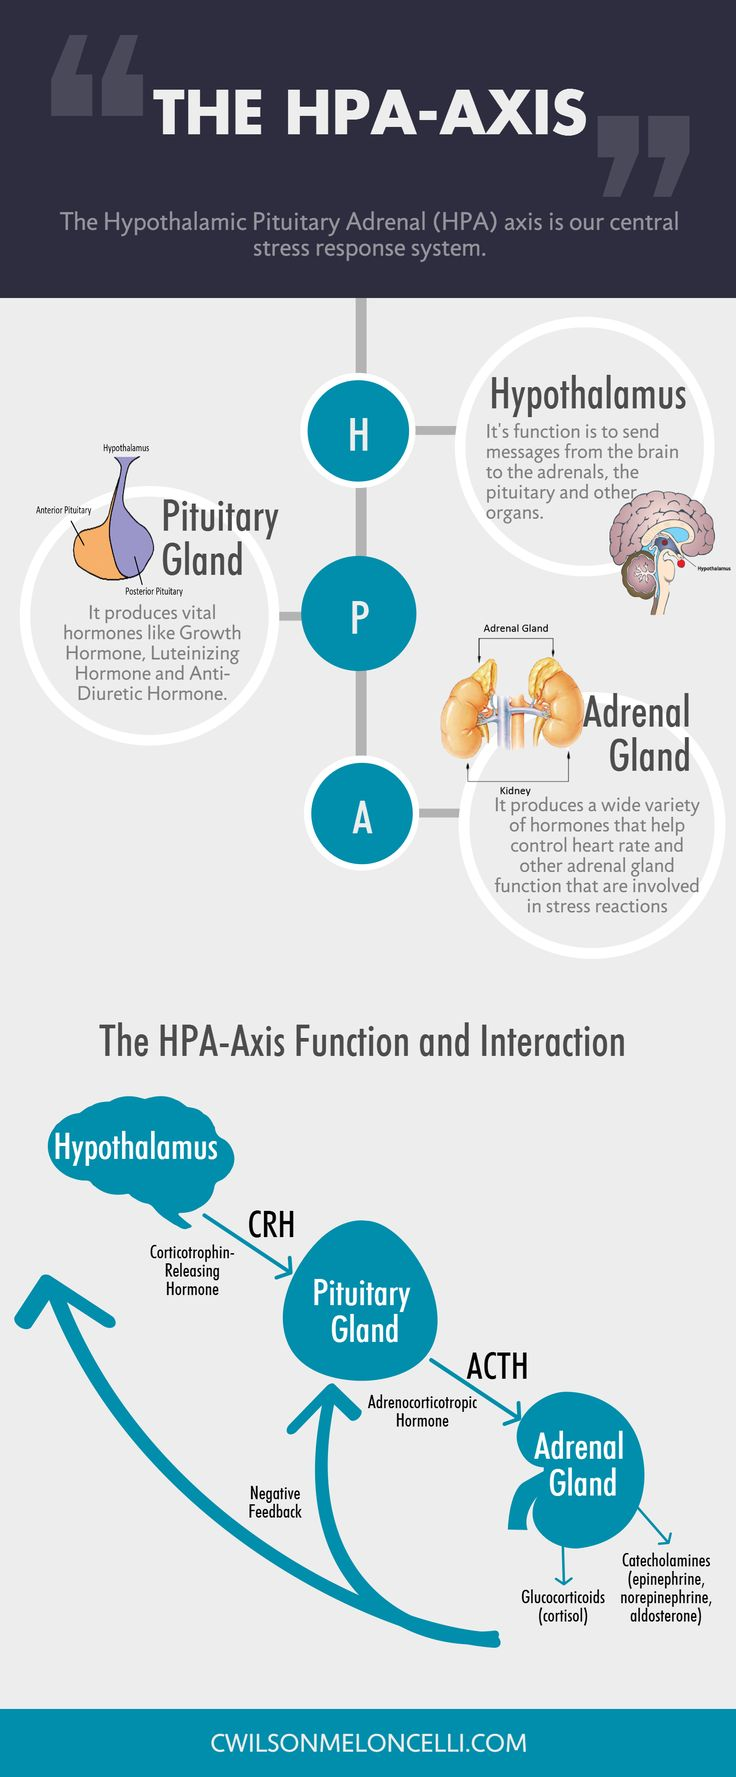 The Hypothalamic Pituitary Adrenal (HPA) axis is our central stress response system. It is a complicated set of relationships and signals that exist between the hypothalamus (a part of the brain), the pituitary gland (also part of the brain) and the adrenals (at the top of the kidney).